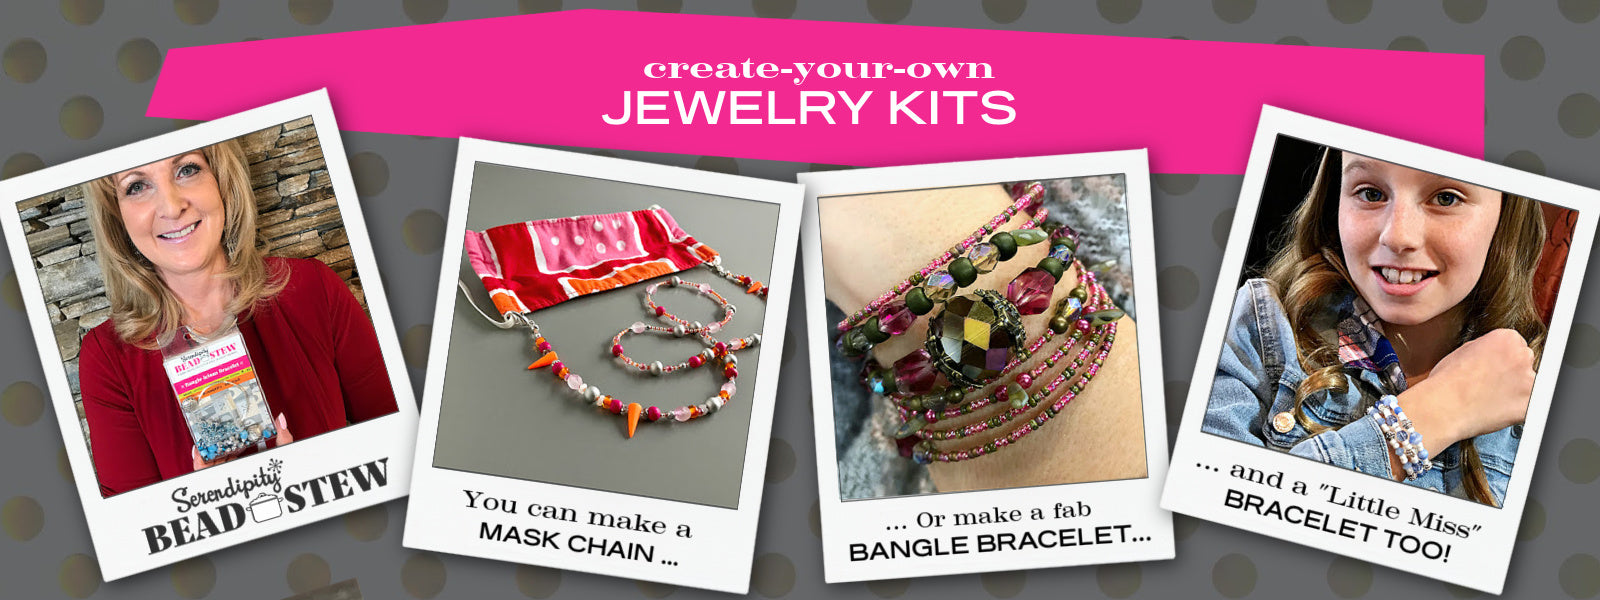 Suzie Q Studio's Serendipity BEAD STEW DIY BRACELET / MASK CHAIN KITS and LITTLE MISS KITS are Limited Edition collections of premium-quality beads and components for you to make a bracelet or mask chain. No experience needed!